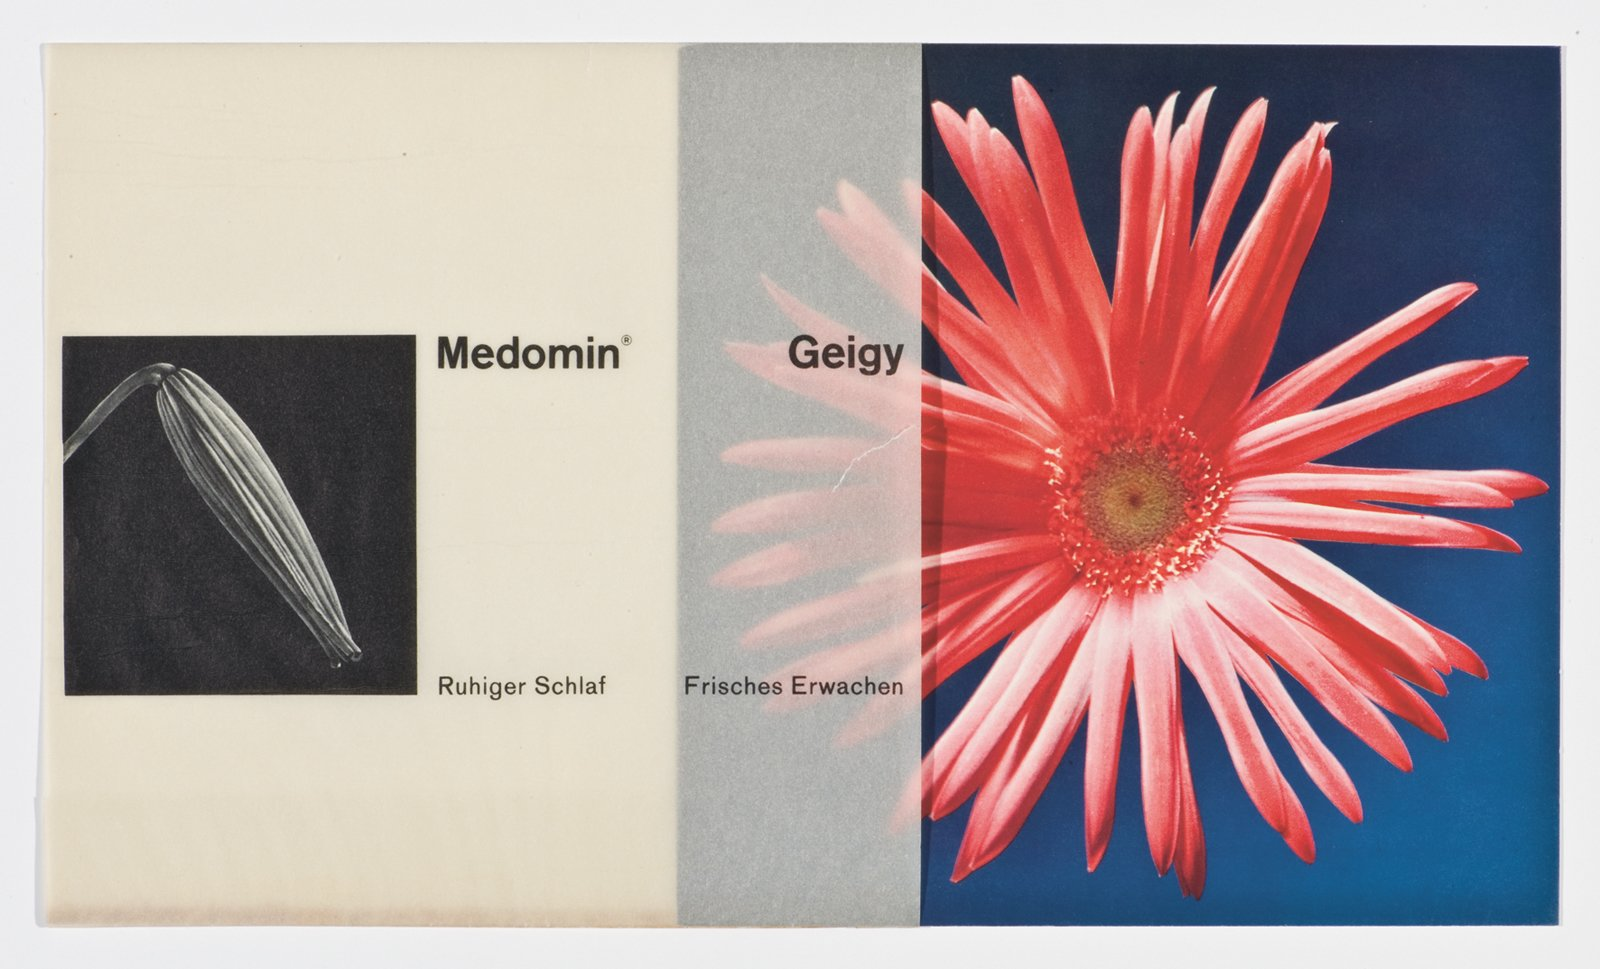 This advertising card designed by Roland Aeschlimann appeared in 1963.  Geigy's Graphic Design  by Dwell